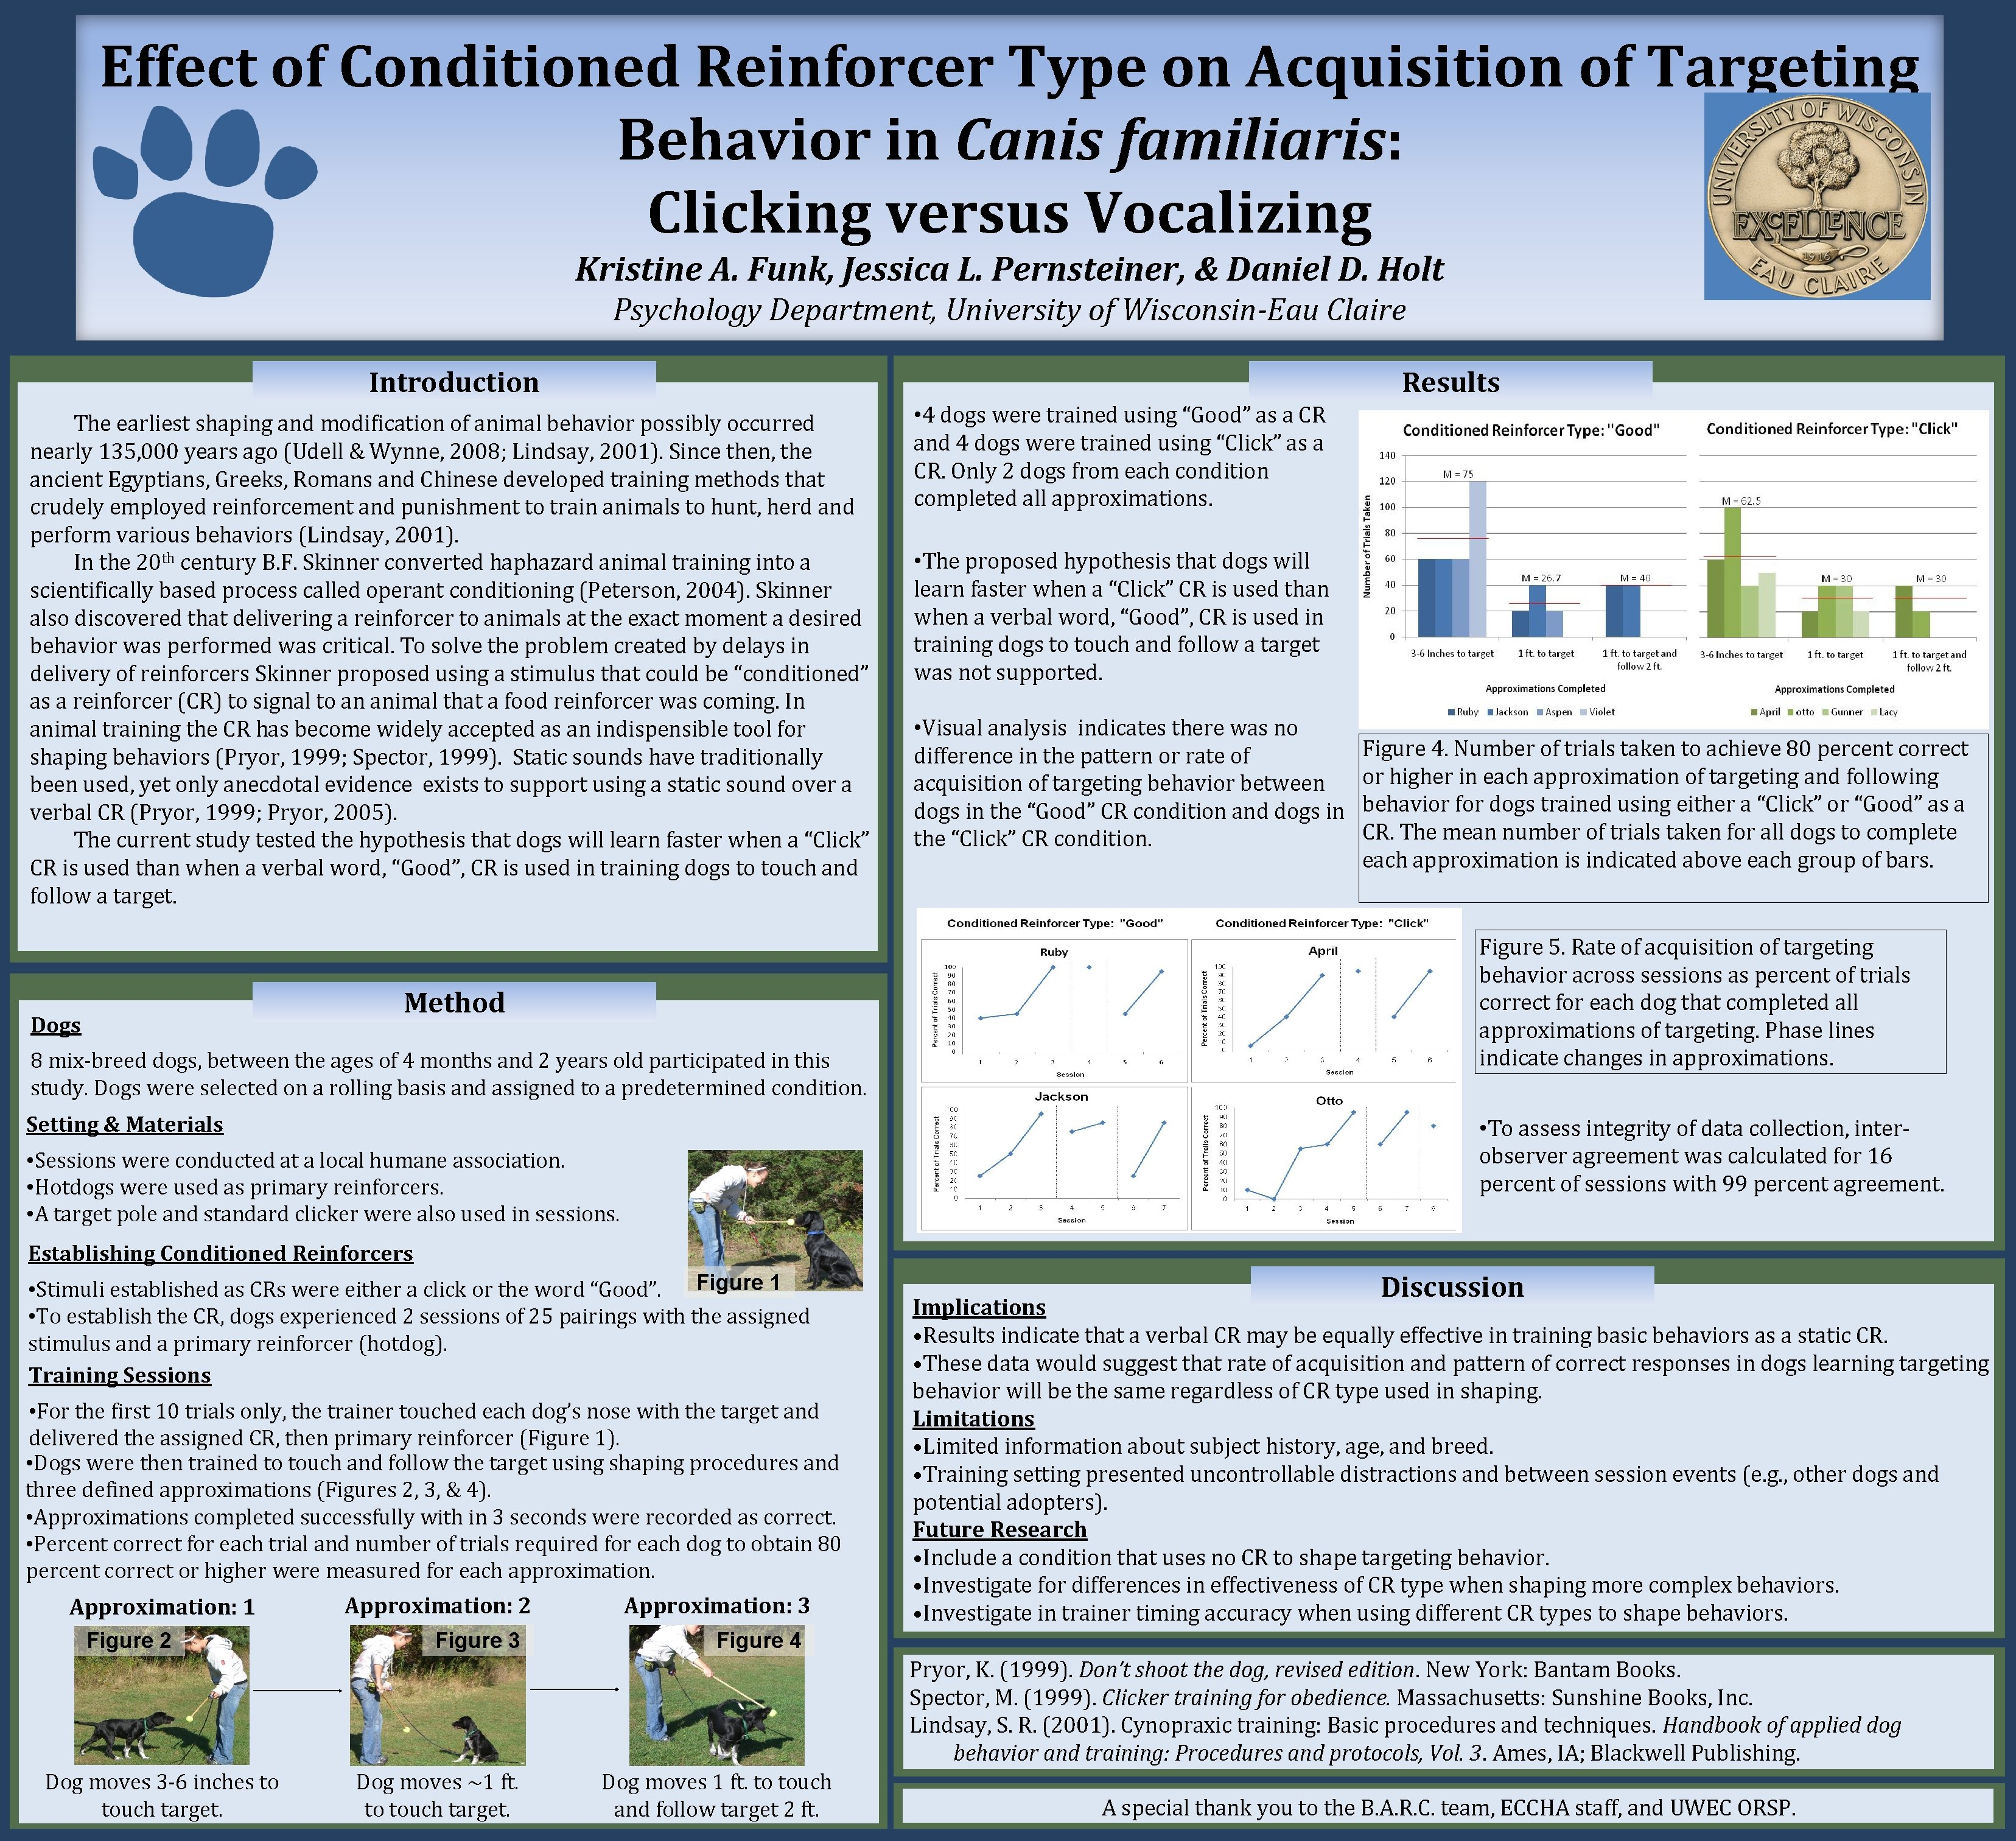 Effect of Conditioned Reinforcer Type on Acquisition of Targeting Behavior in Canis familiaris: Clicking